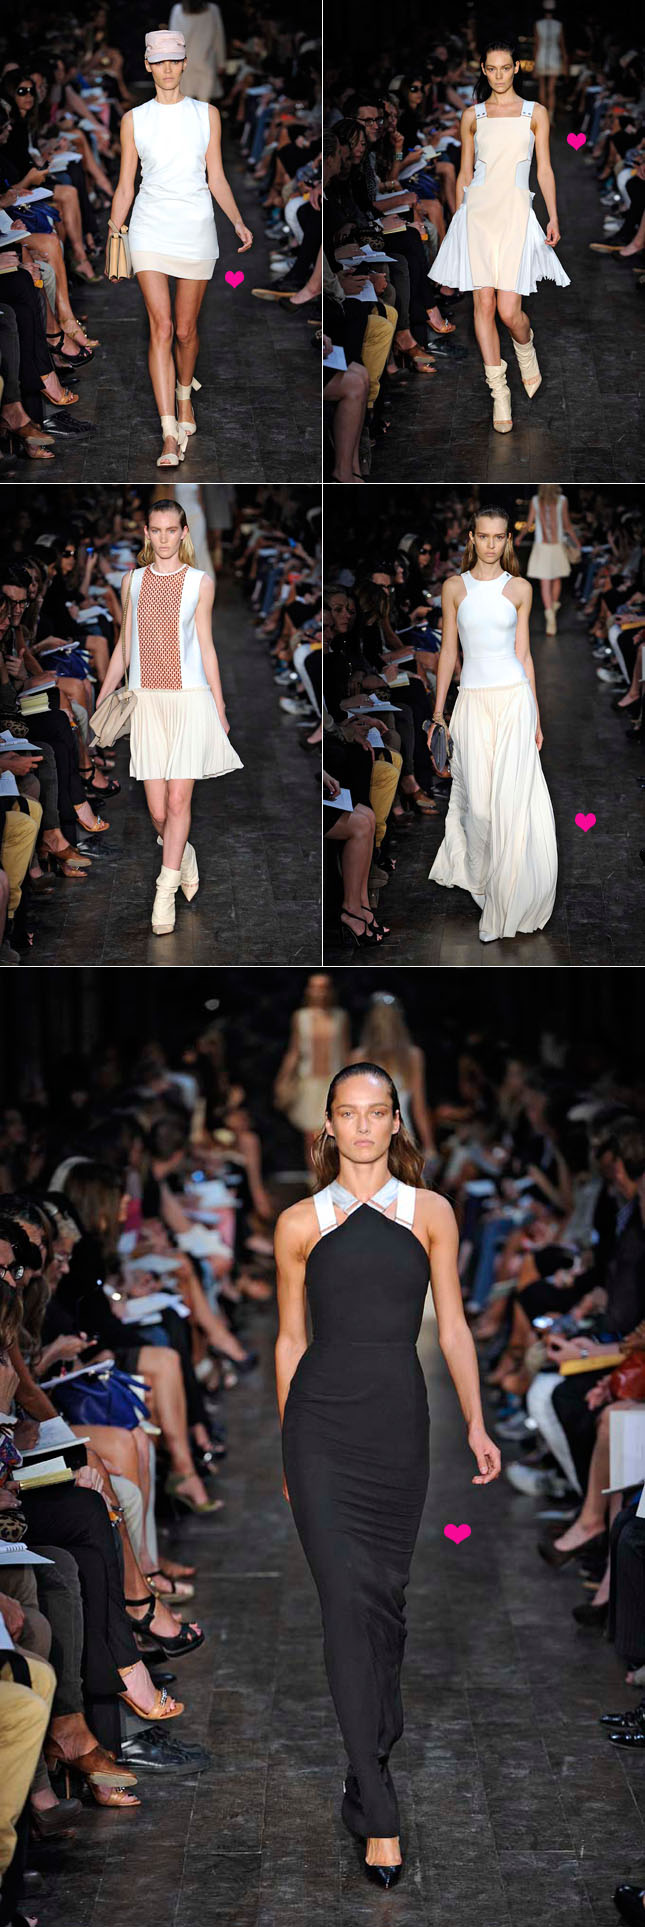 Desfile Victoria Beckham Verão 2012 NYFW - New York Fashion Week